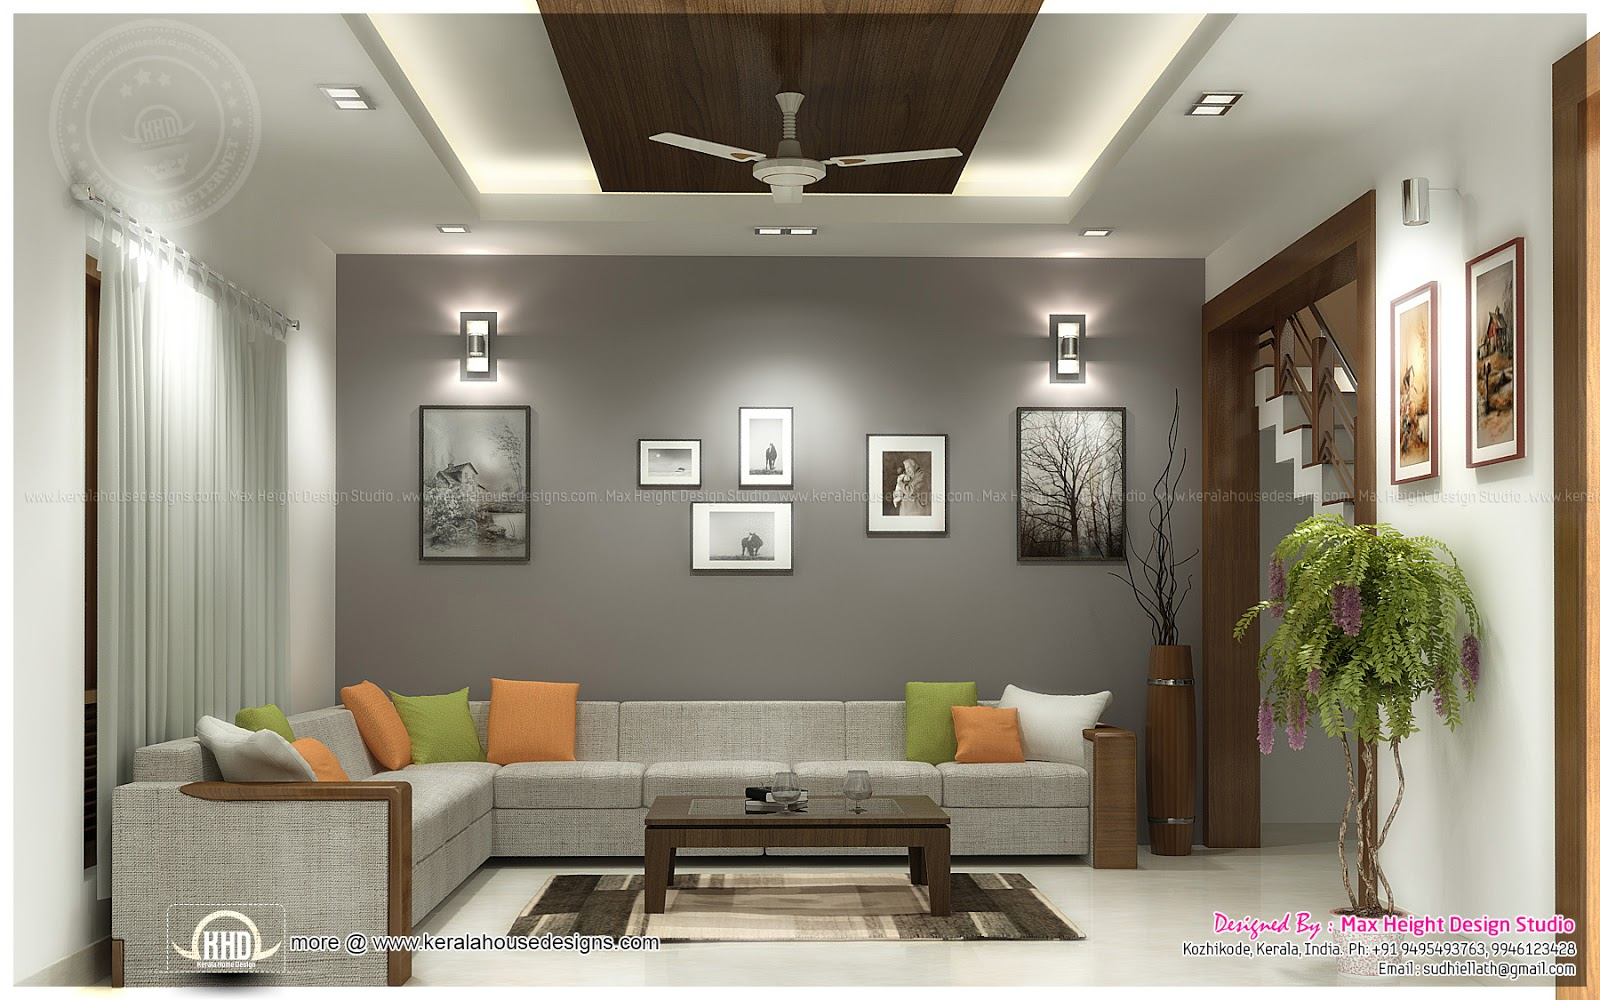 Beautiful interior ideas for home kerala home design and for The family room design studio